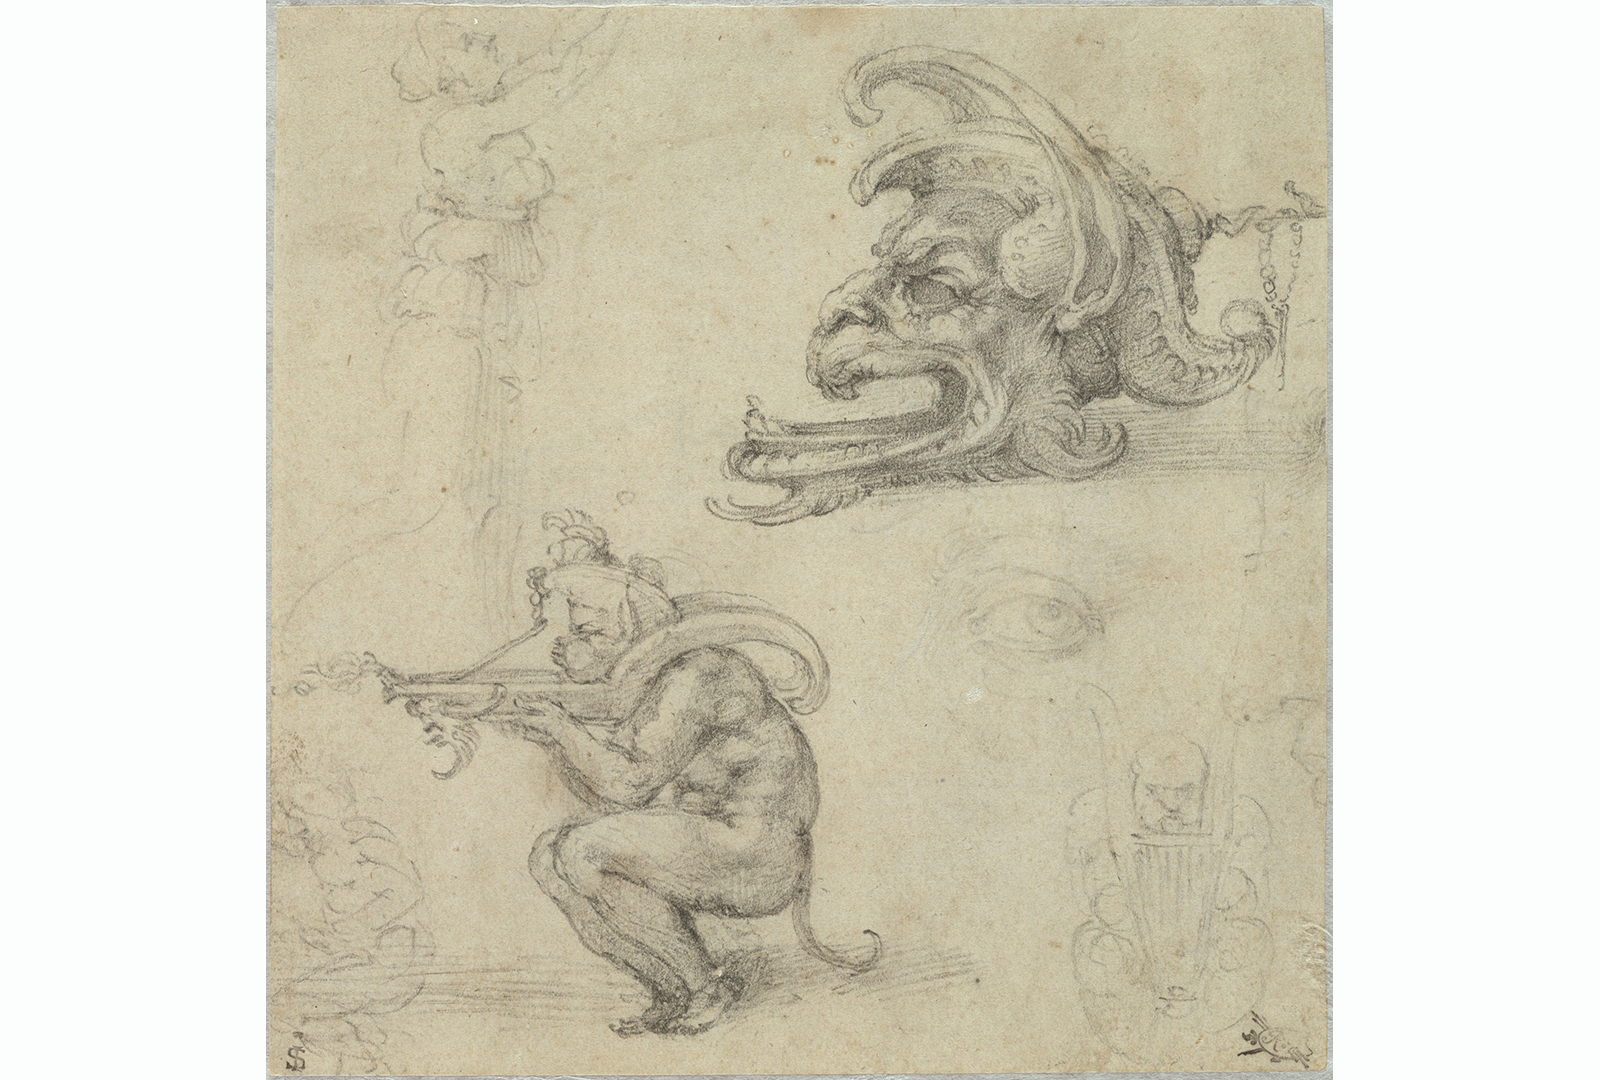 This drawing shows five sketches of figures and faces and two finished studies of grotesque figures.